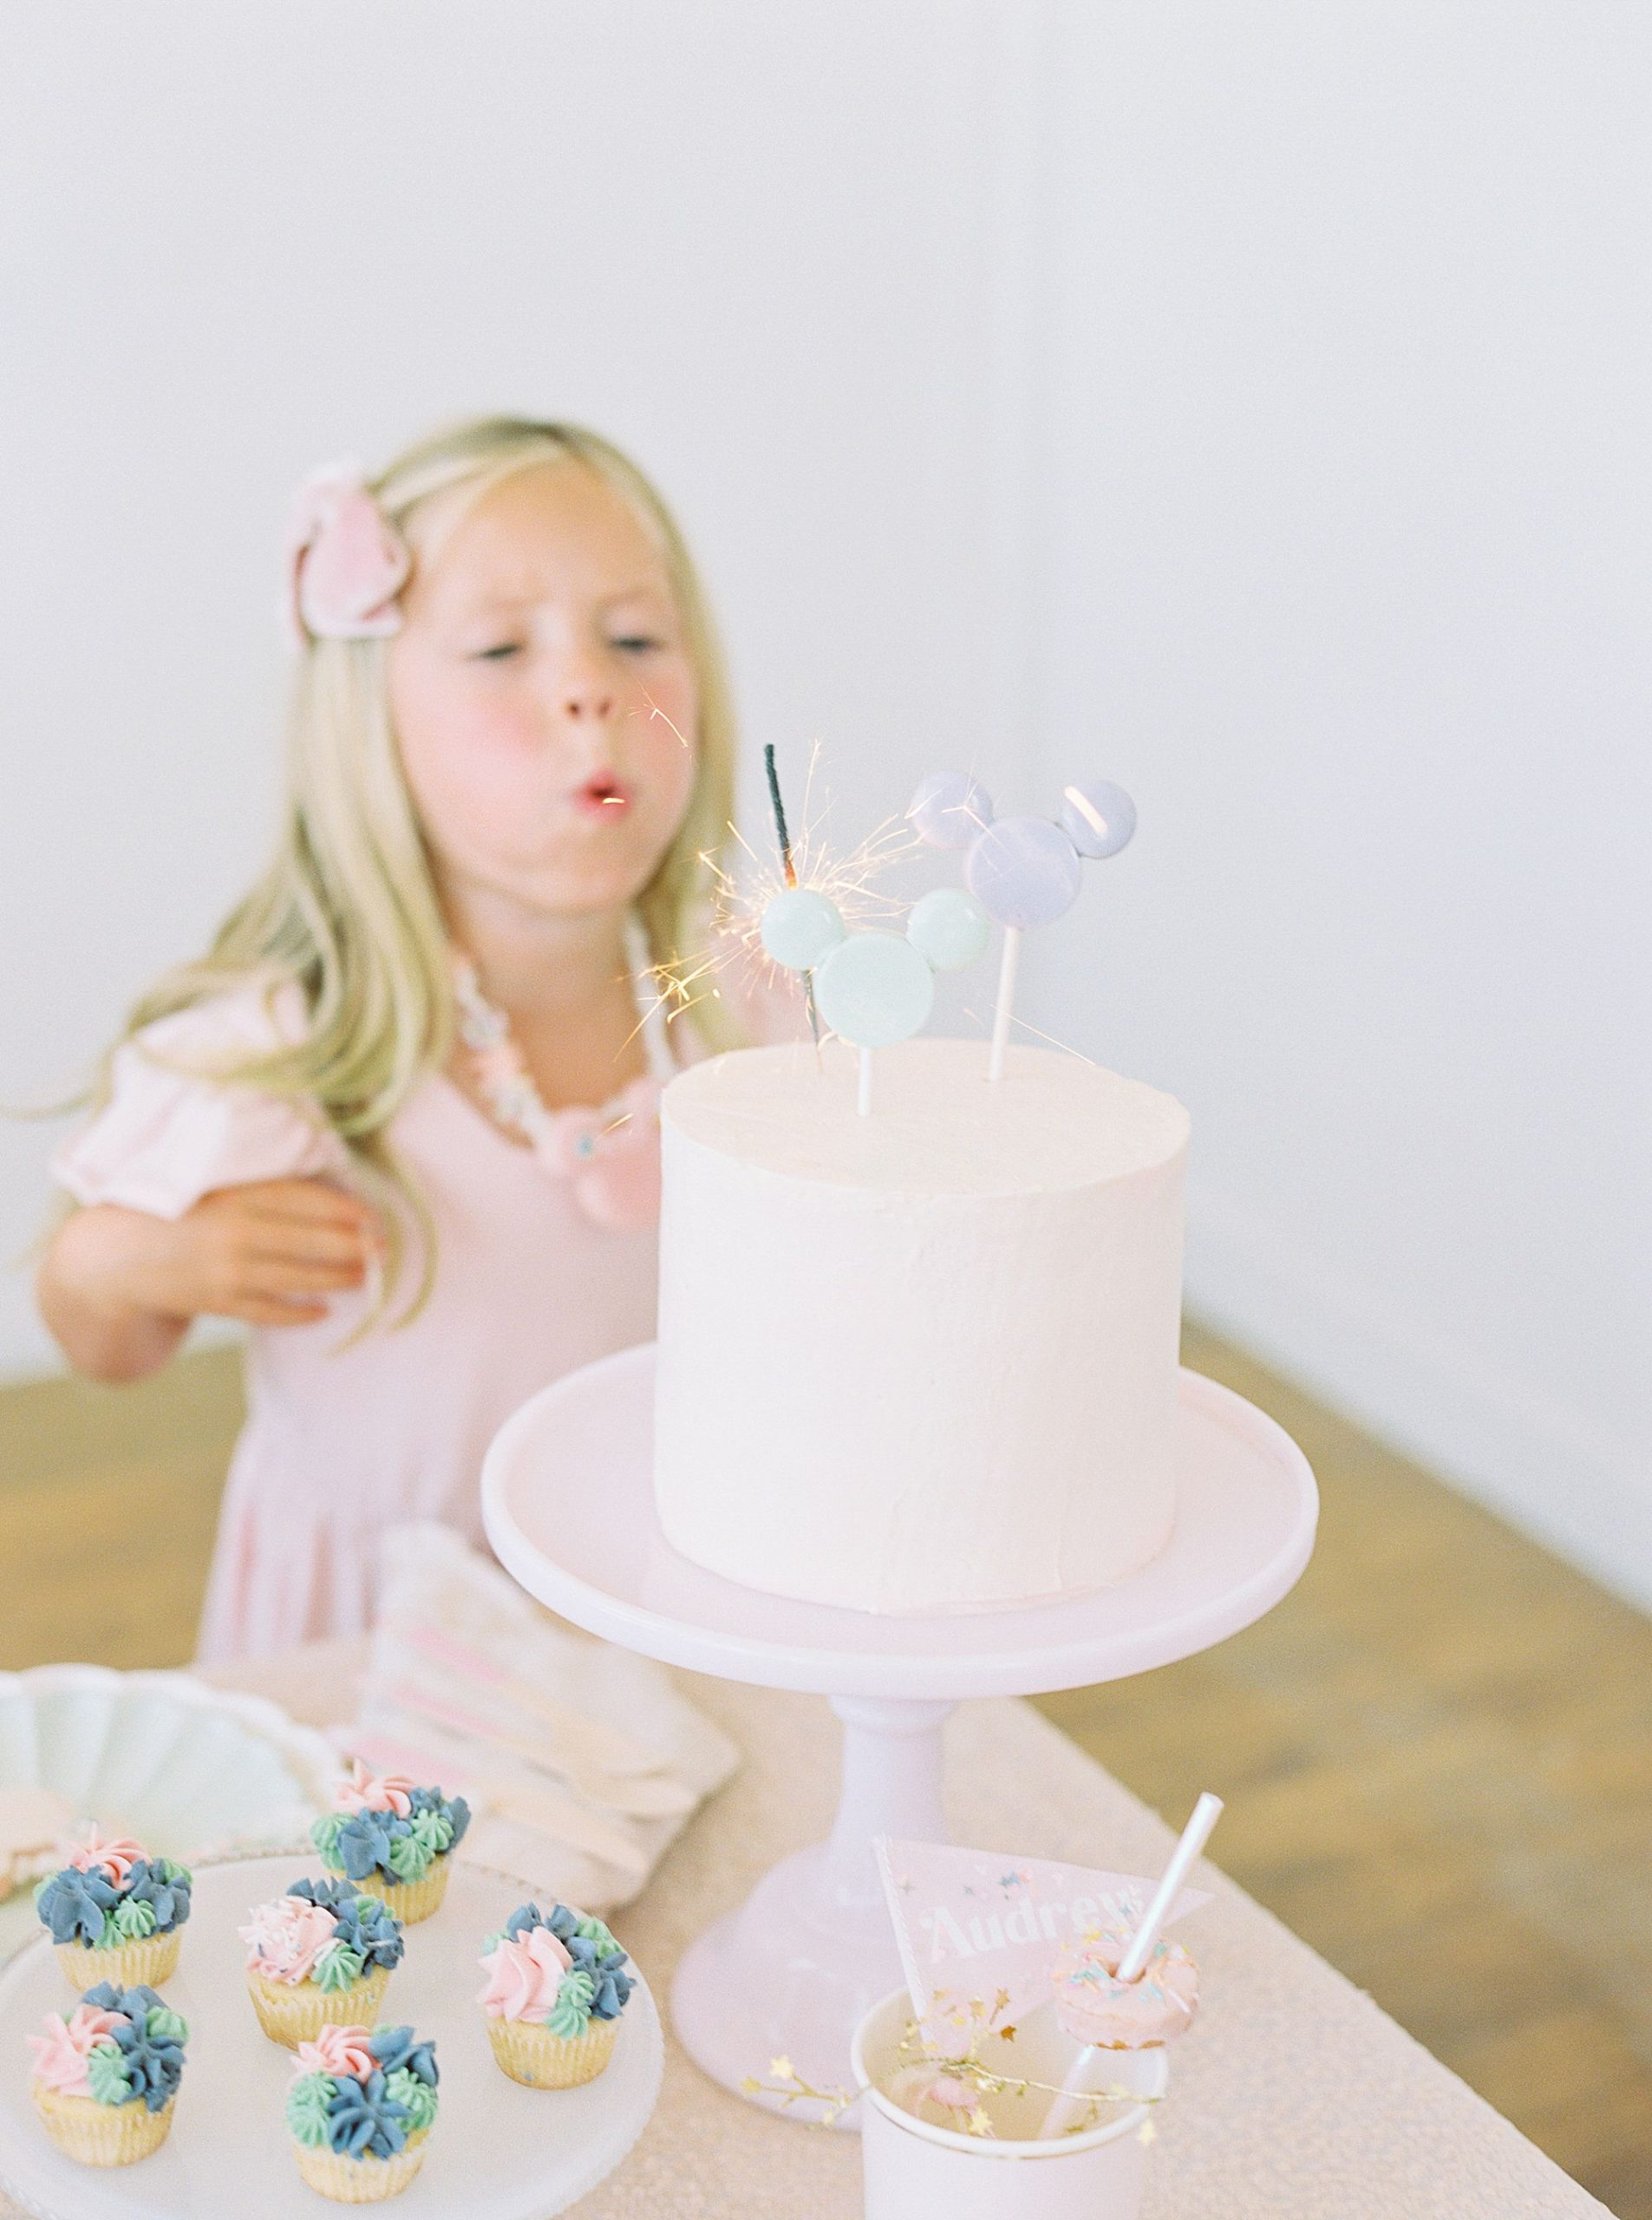 Vintage Disney Birthday Party for Princess Nora's Fourth Birthday - Featured on 100 Layer Cake - Ashley Baumgartner - Parker Grace Events_0031.jpg